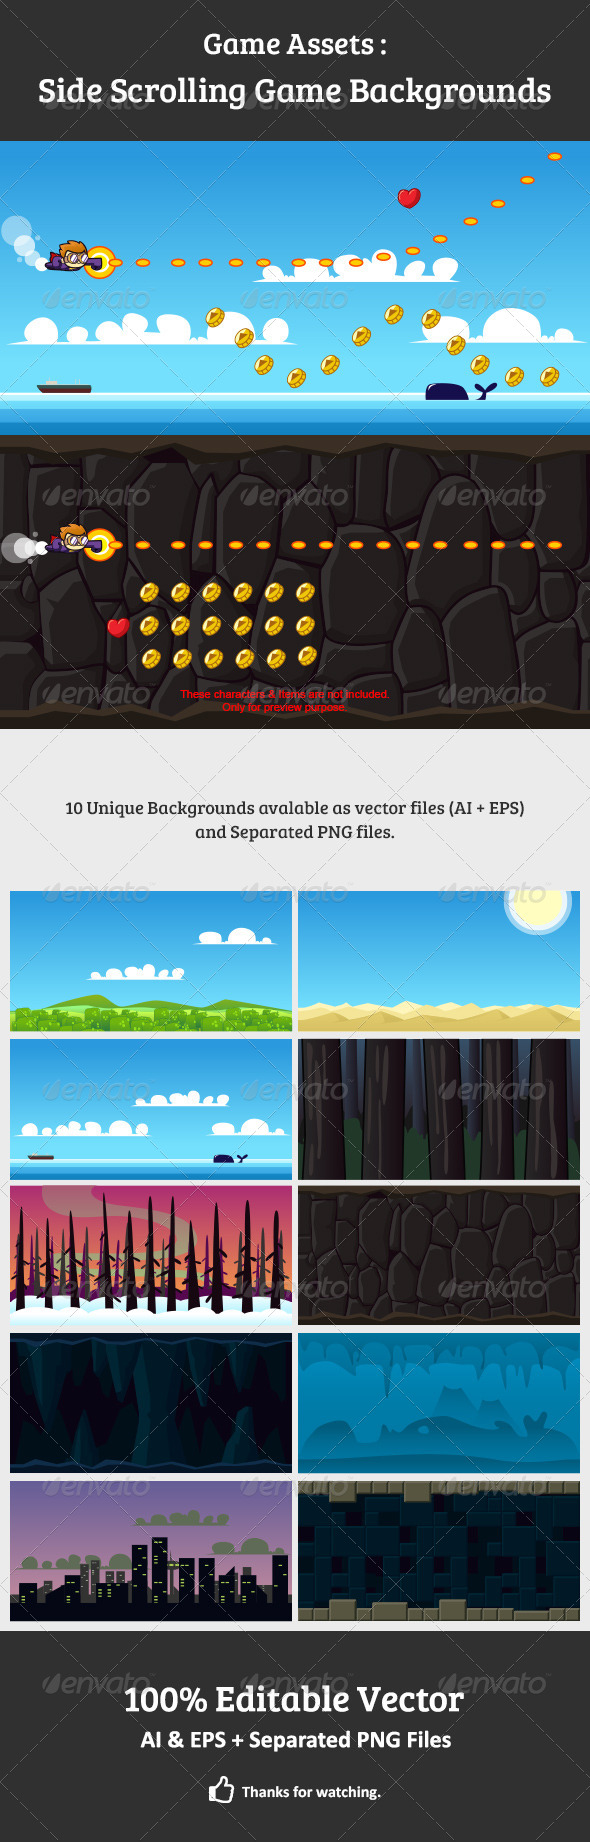 GraphicRiver Side Scrolling Game Backgrounds 7513749